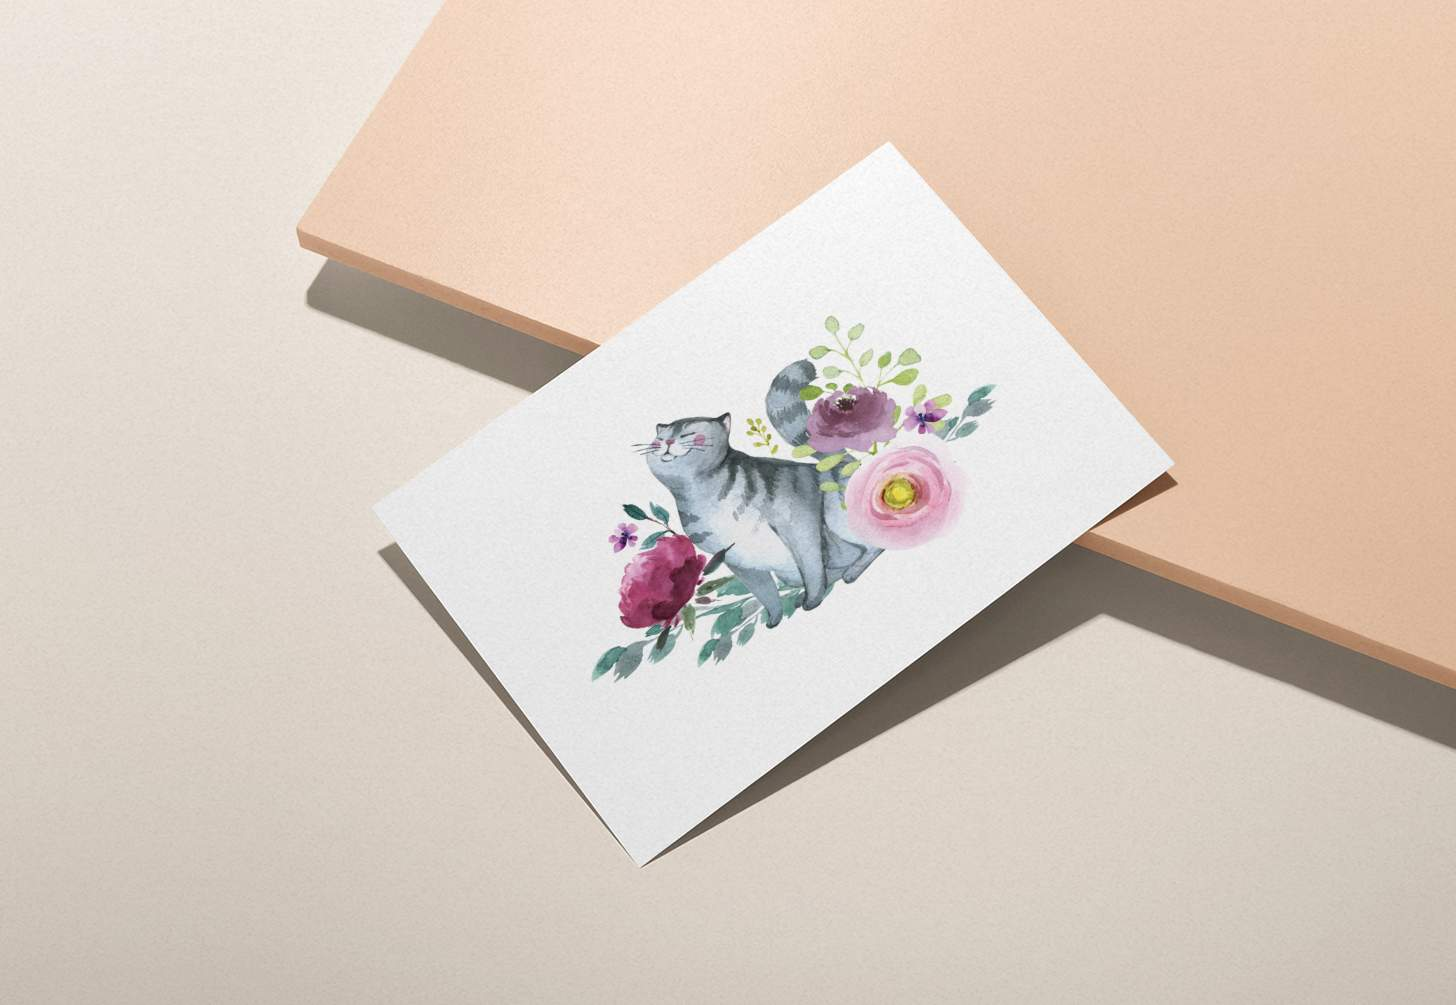 Gray striped cat with flowers design card on pink background